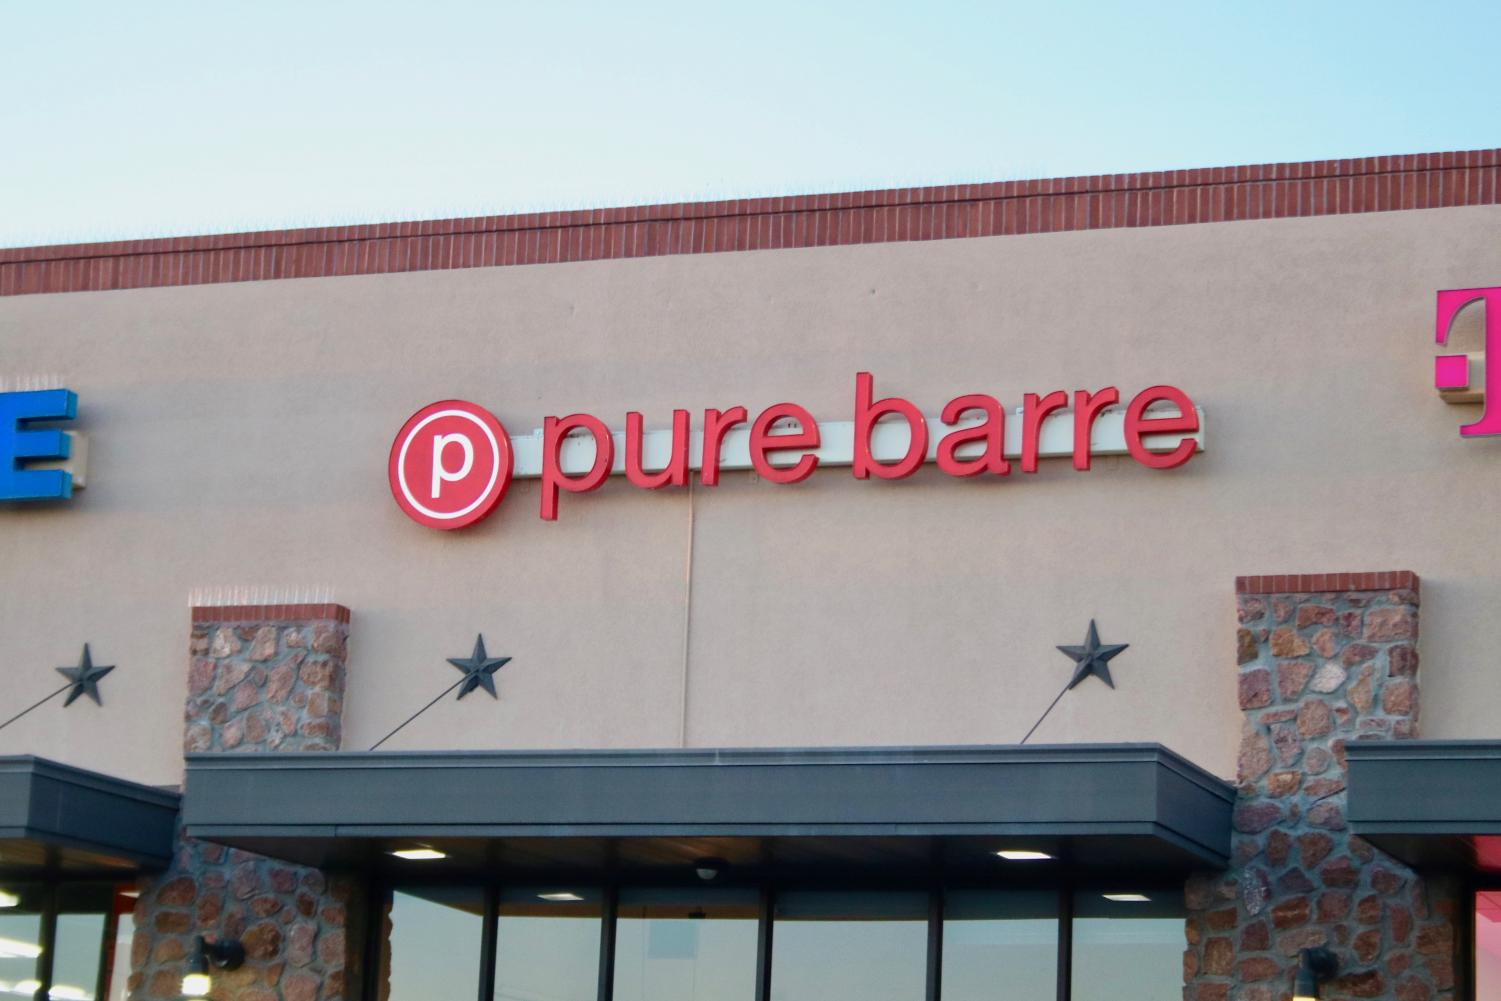 Pure Barre workouts take 45 to 50 minutes and students can choose how often they attend.